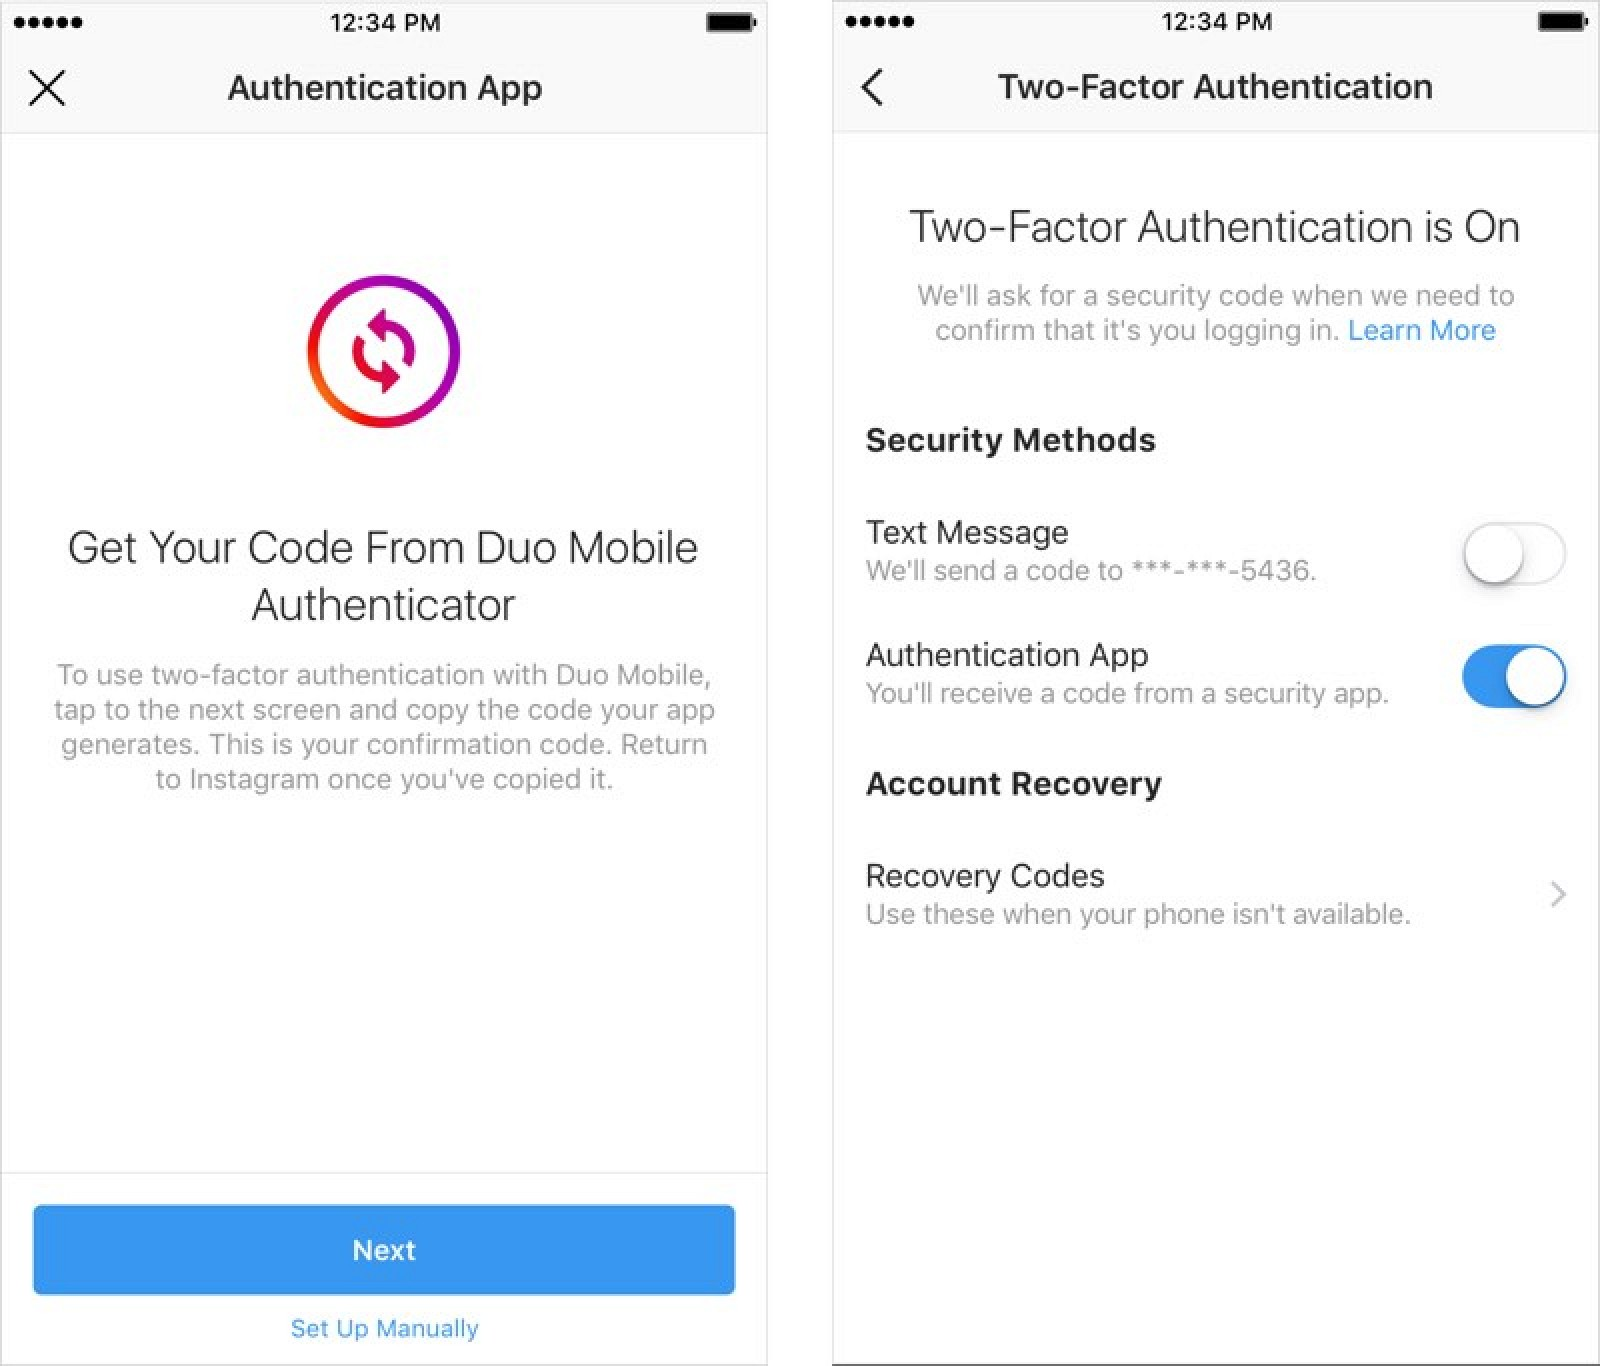 Instagram Announces Support for Two-Factor Authentication Apps and